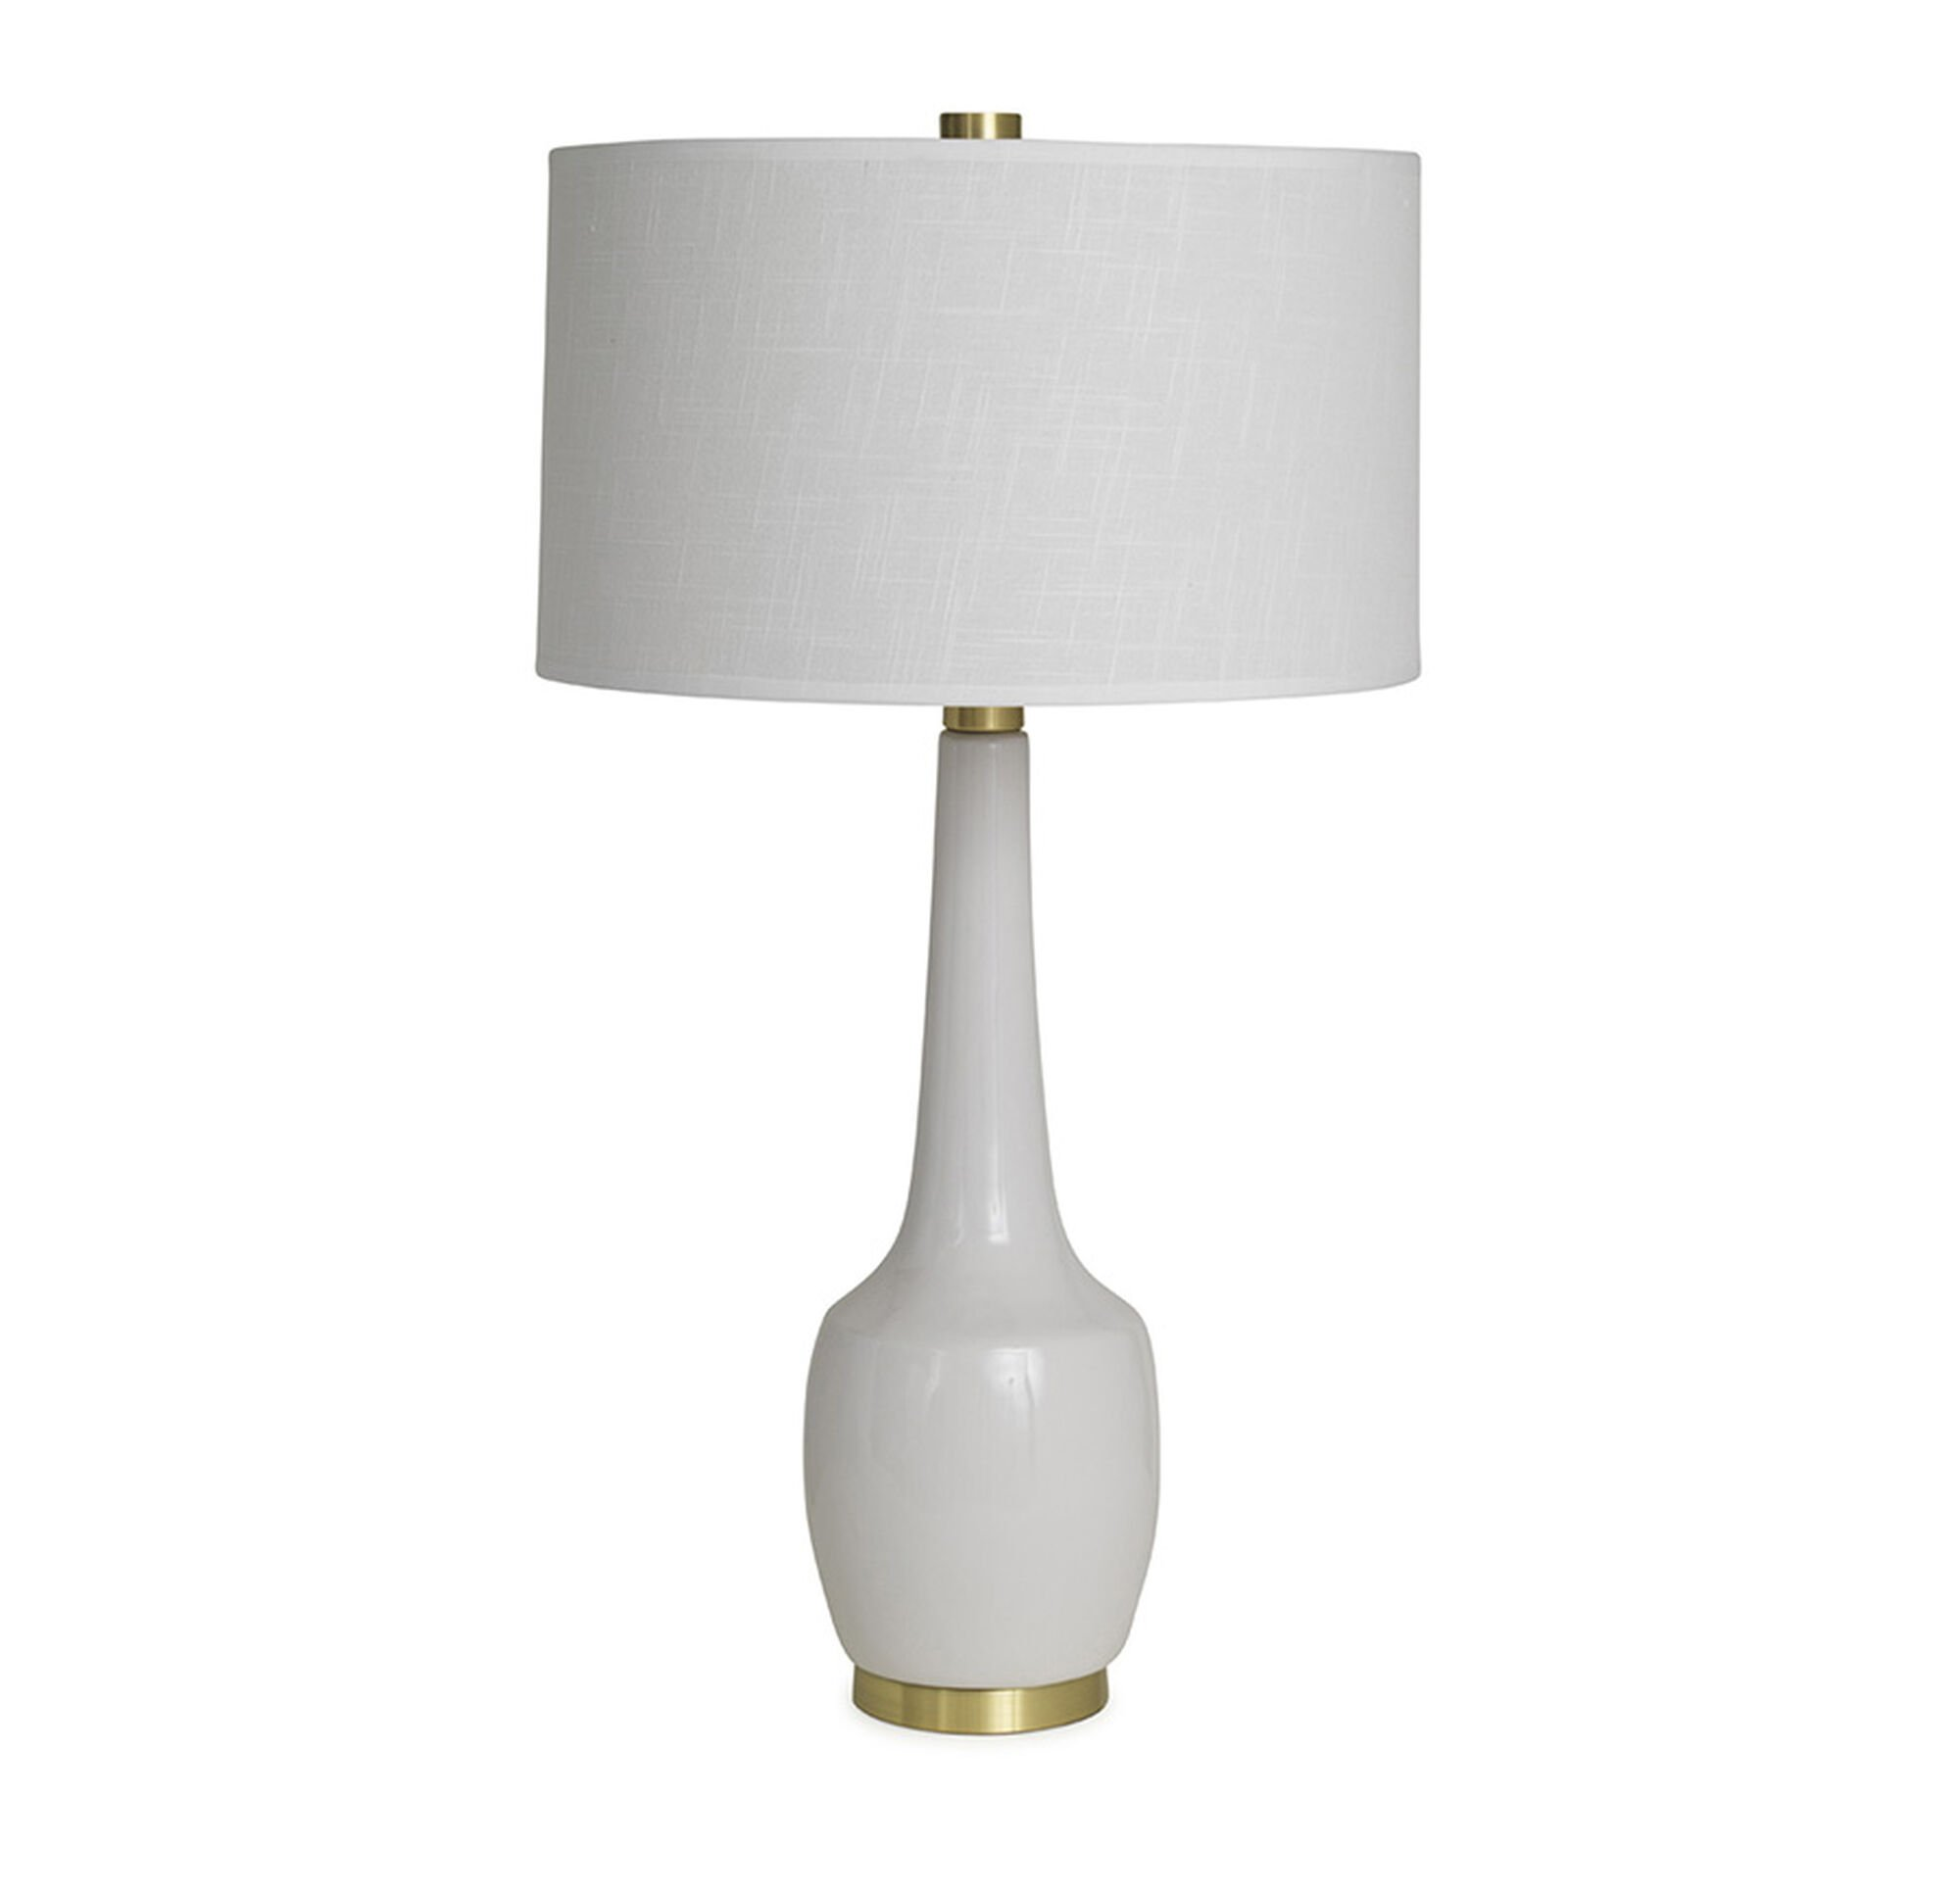 Nola lily white table lamp nola lily white table lamp hi res geotapseo Images